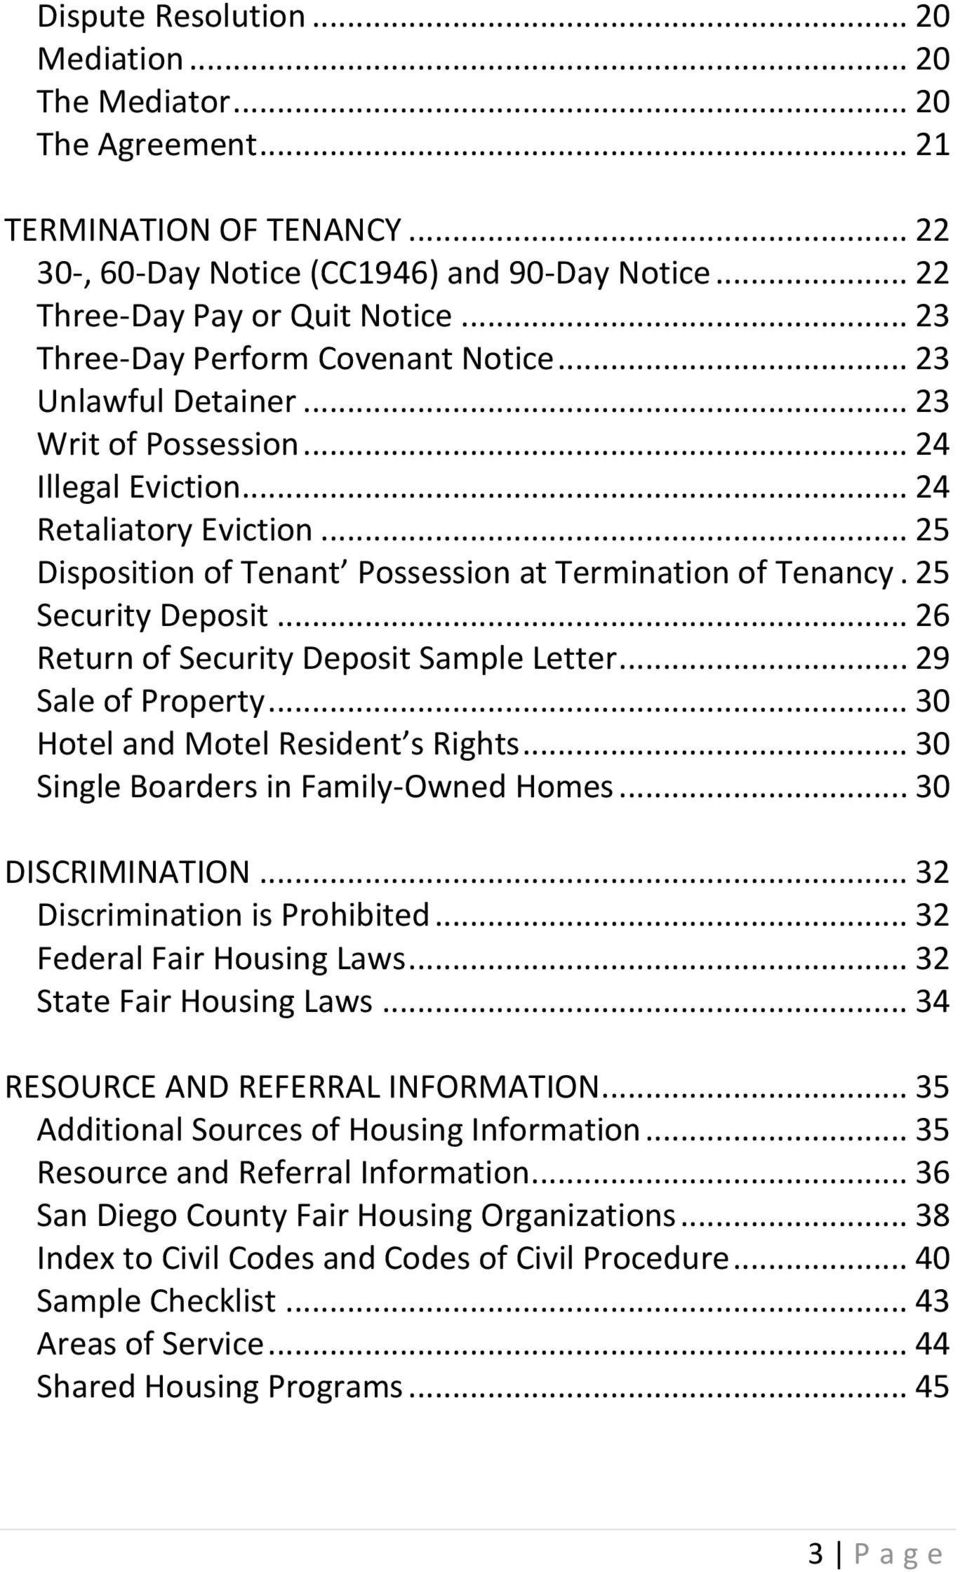 .. 25 Disposition of Tenant Possession at Termination of Tenancy. 25 Security Deposit... 26 Return of Security Deposit Sample Letter... 29 Sale of Property... 30 Hotel and Motel Resident s Rights.